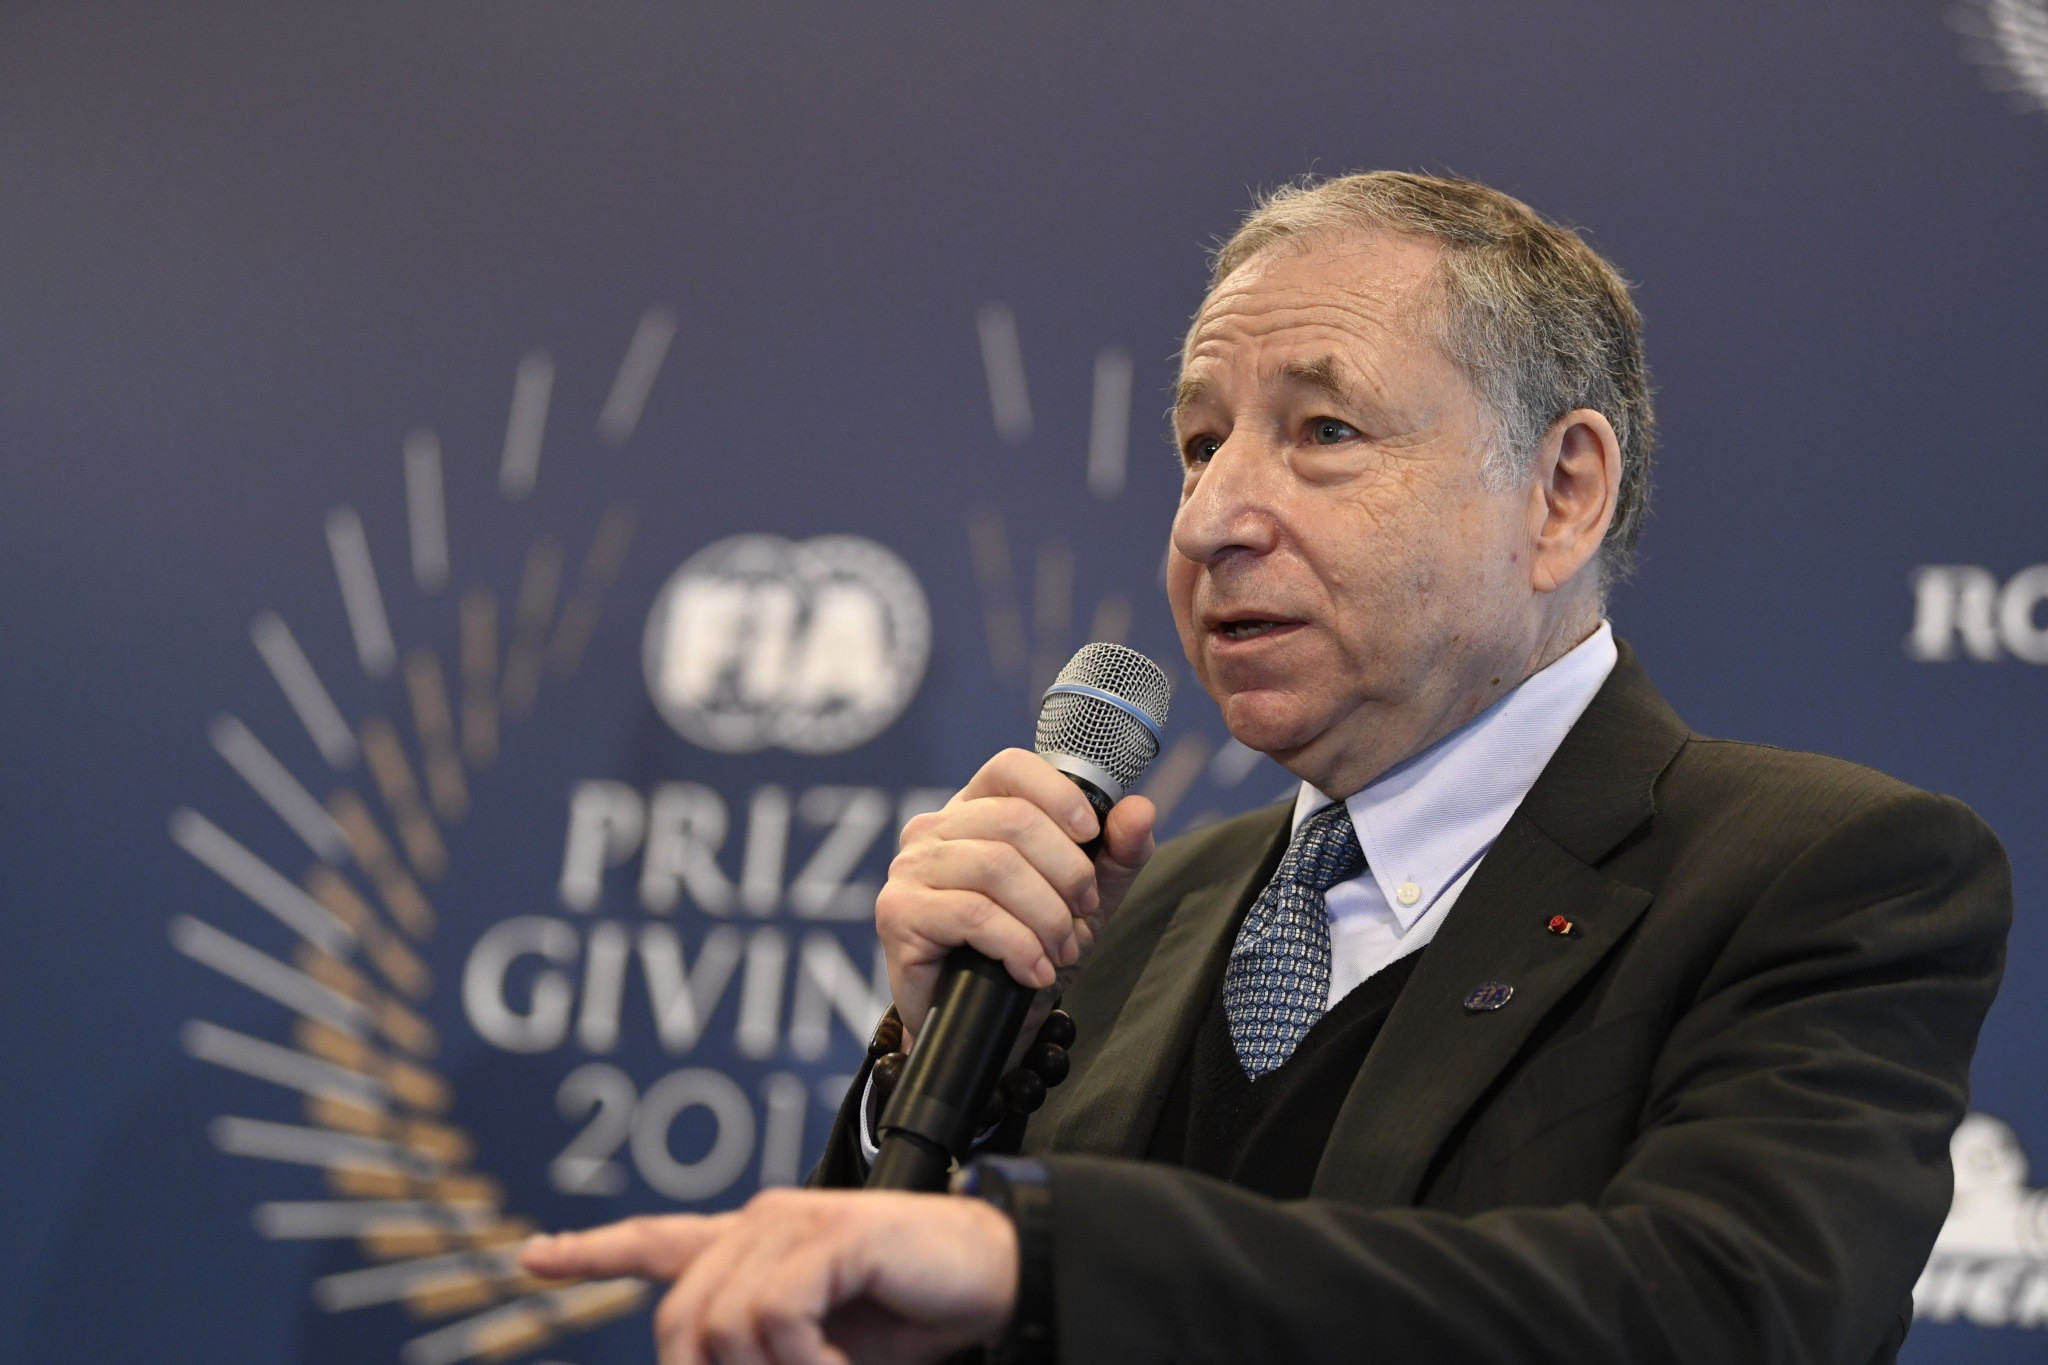 Todt re-elected International Automobile Federation President